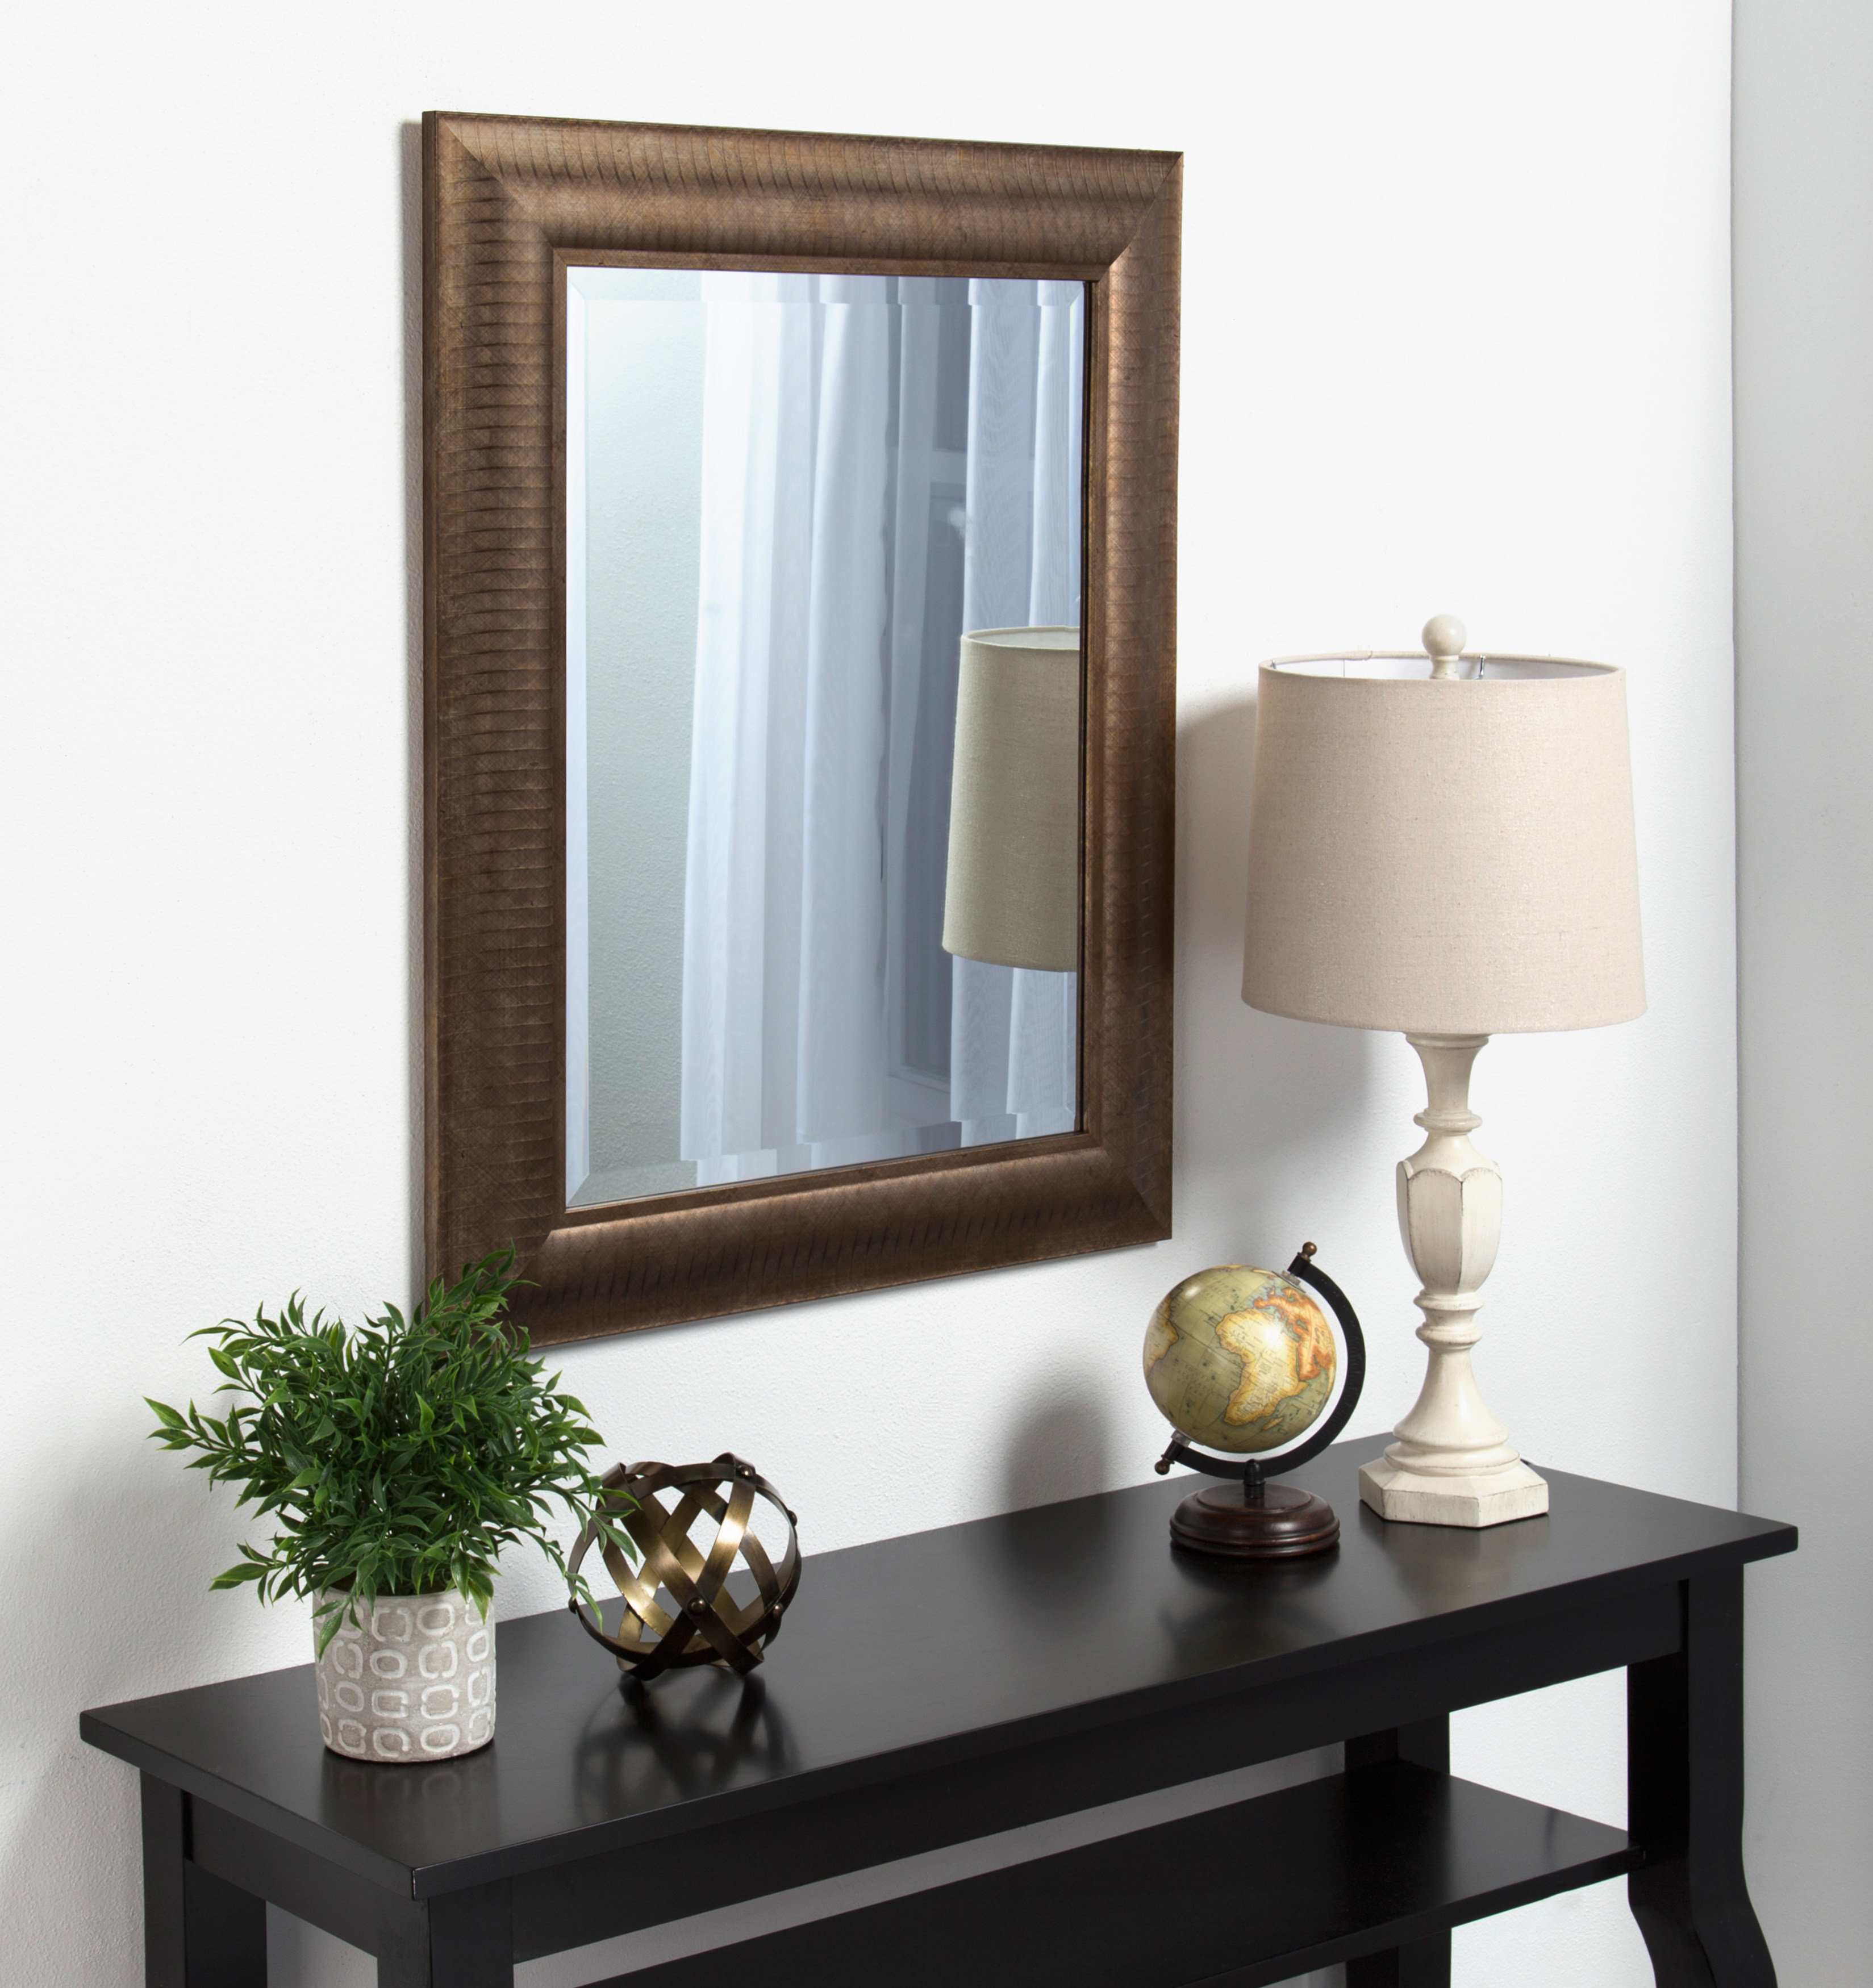 Tora Traditional Beveled Accent Mirror Regarding Willacoochee Traditional Beveled Accent Mirrors (View 12 of 20)